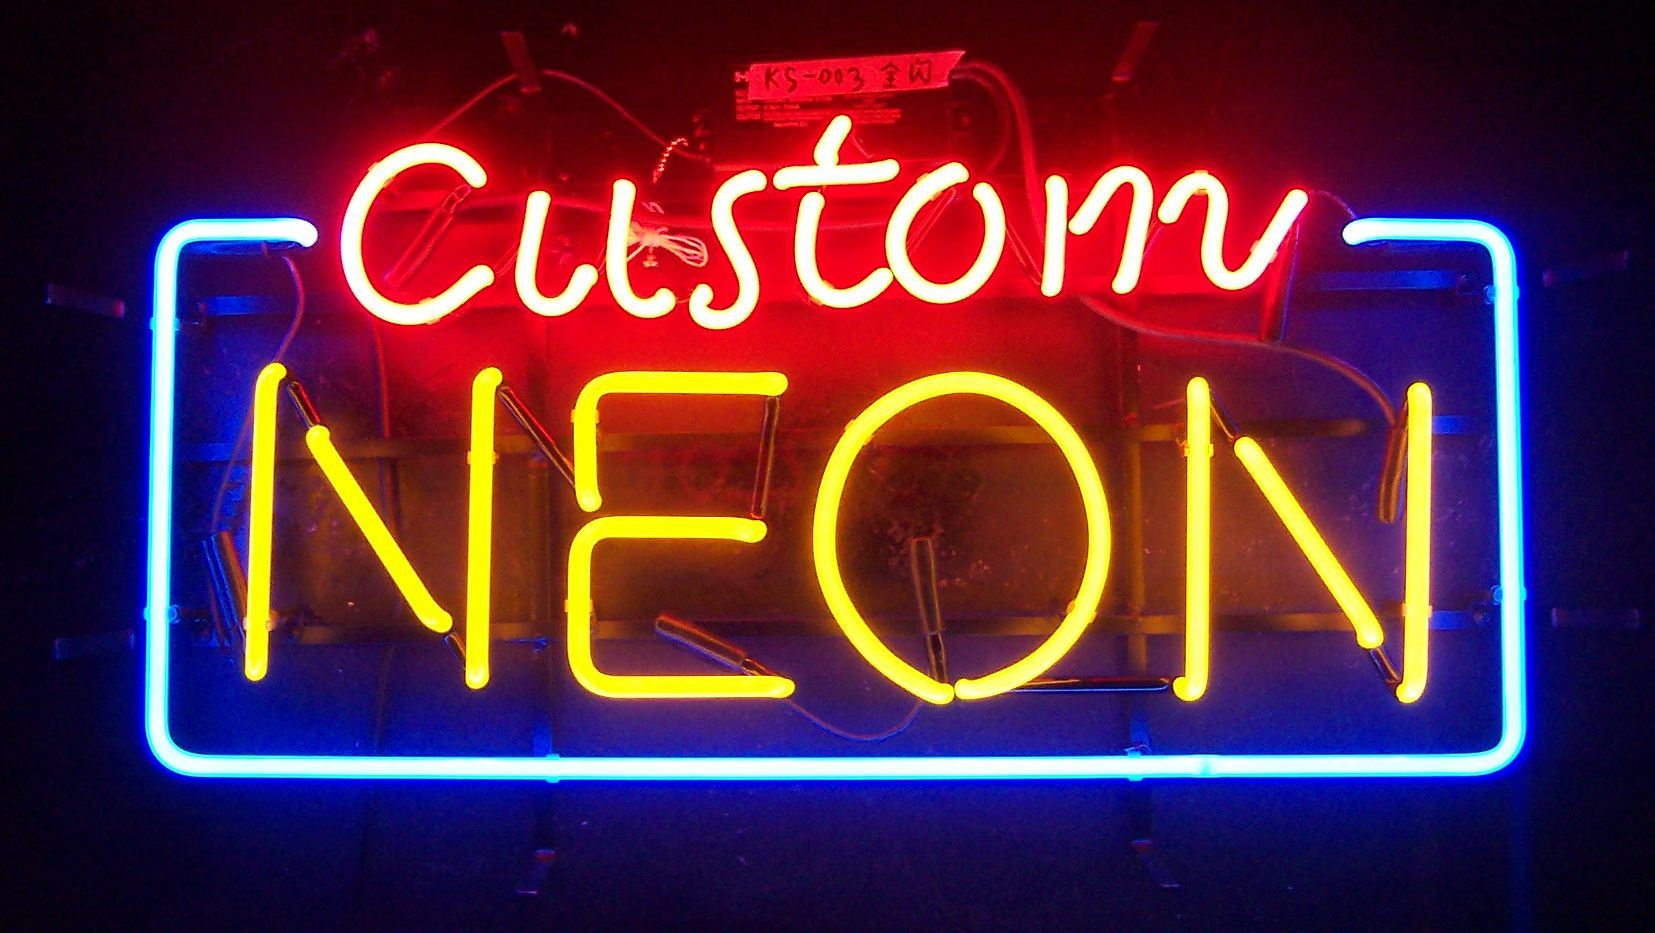 China Custome Beer Neon Sign - China Neon Signs, Customed Sign